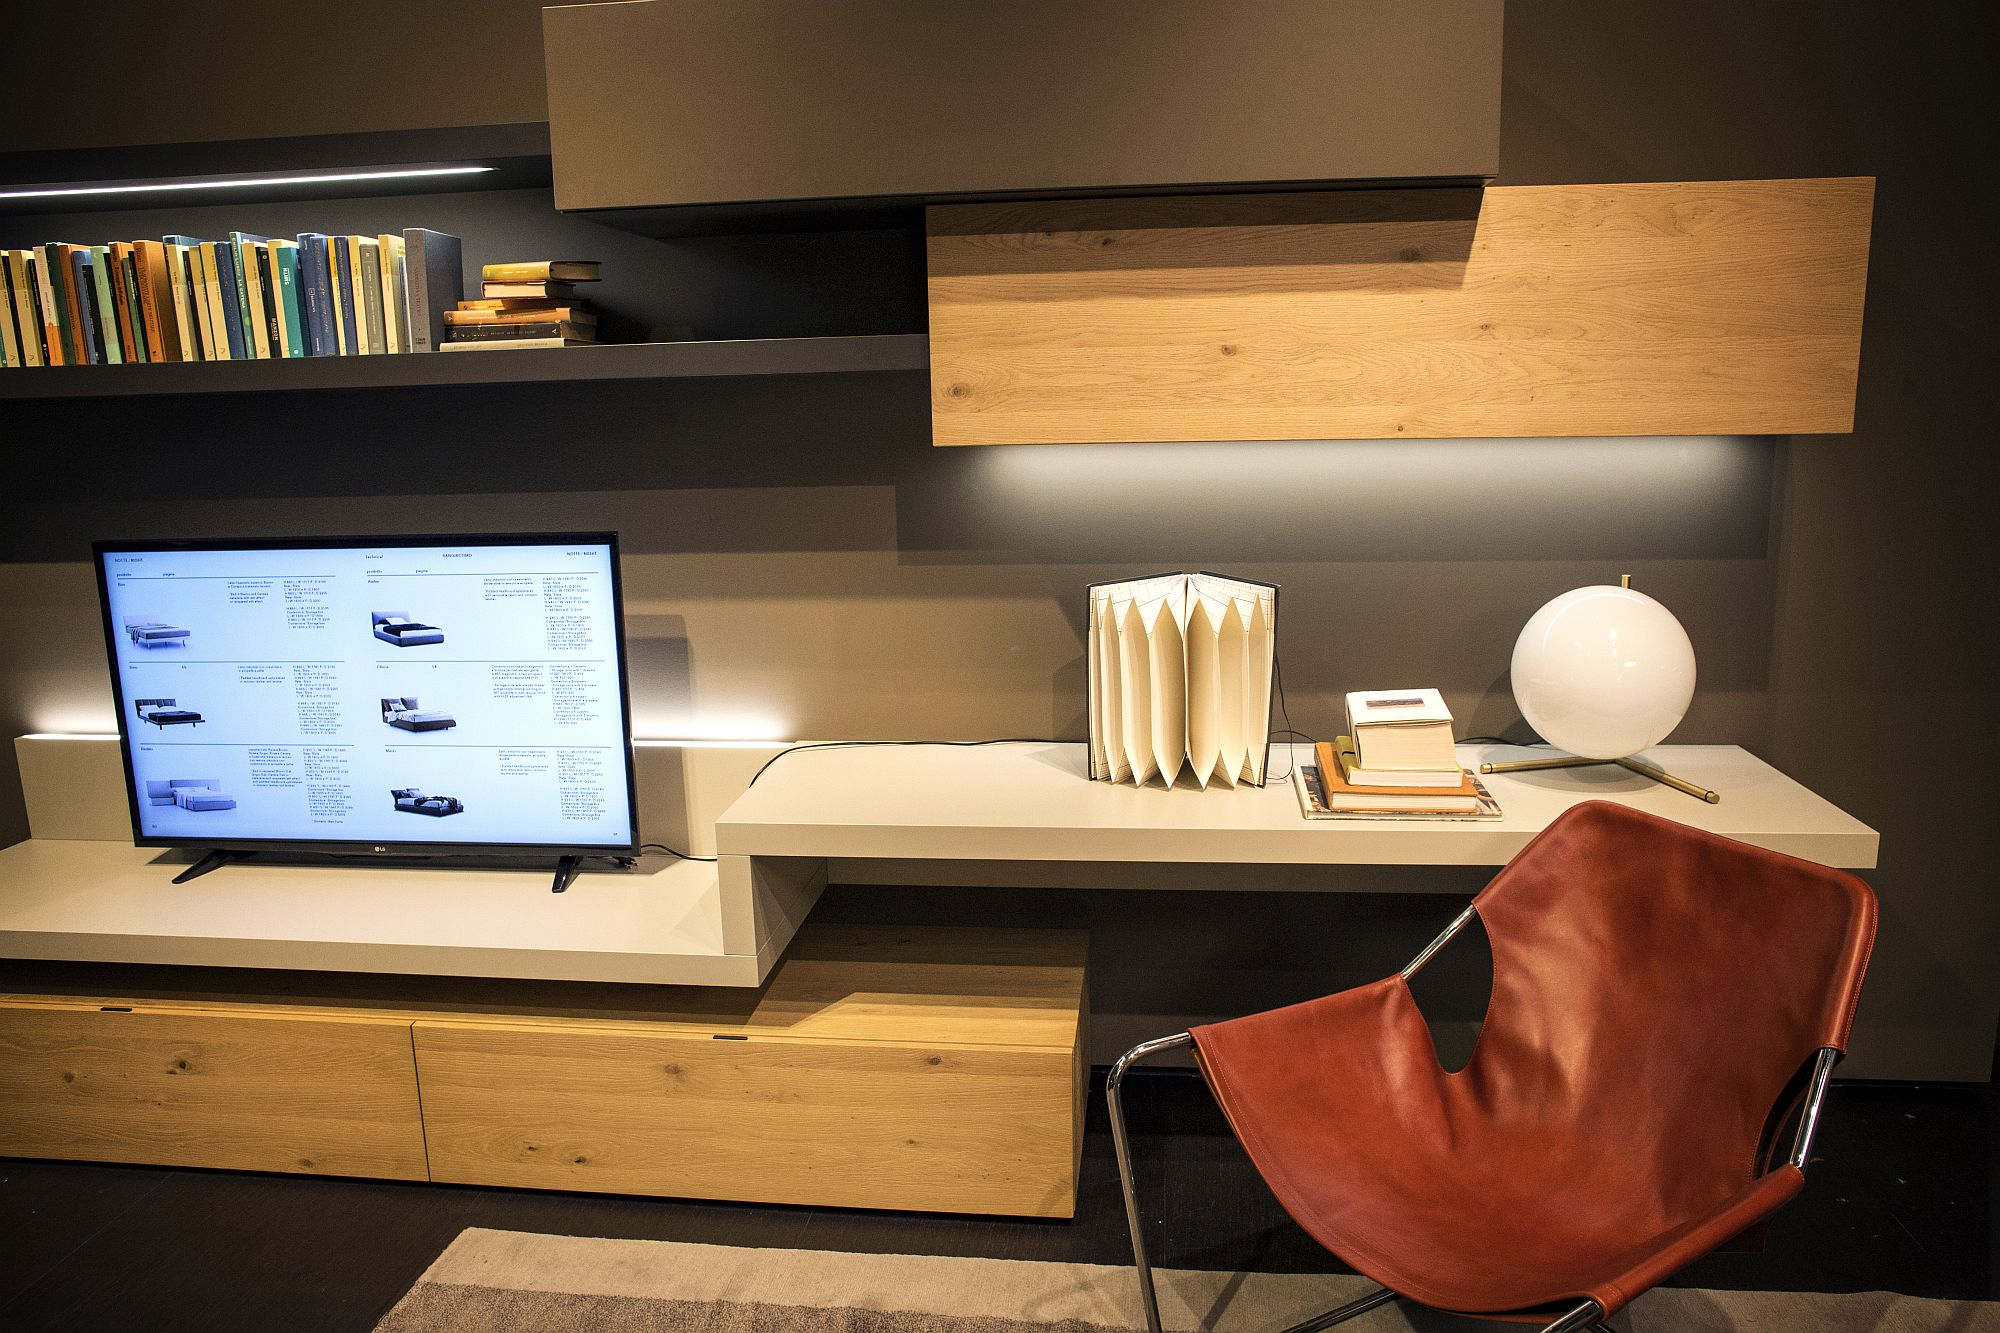 Comfy chair turns the floating shelf into an ergonomic workstation